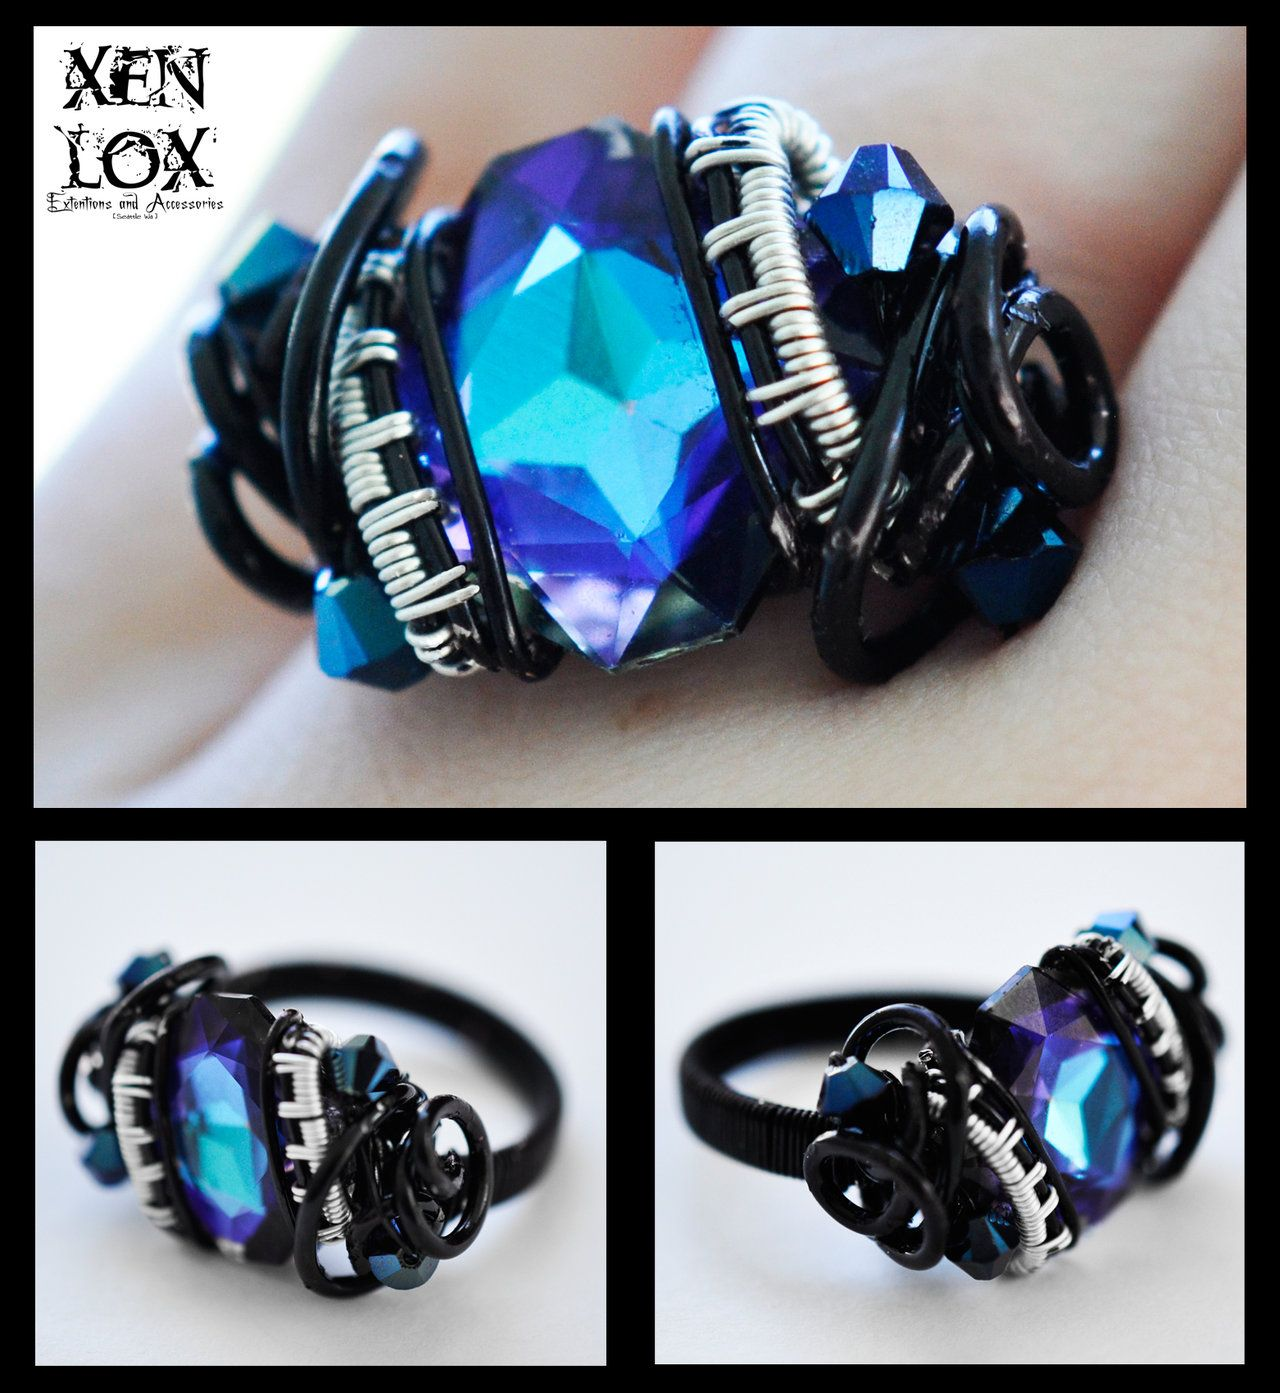 Blueviolet nebula ring my favorite its made out of